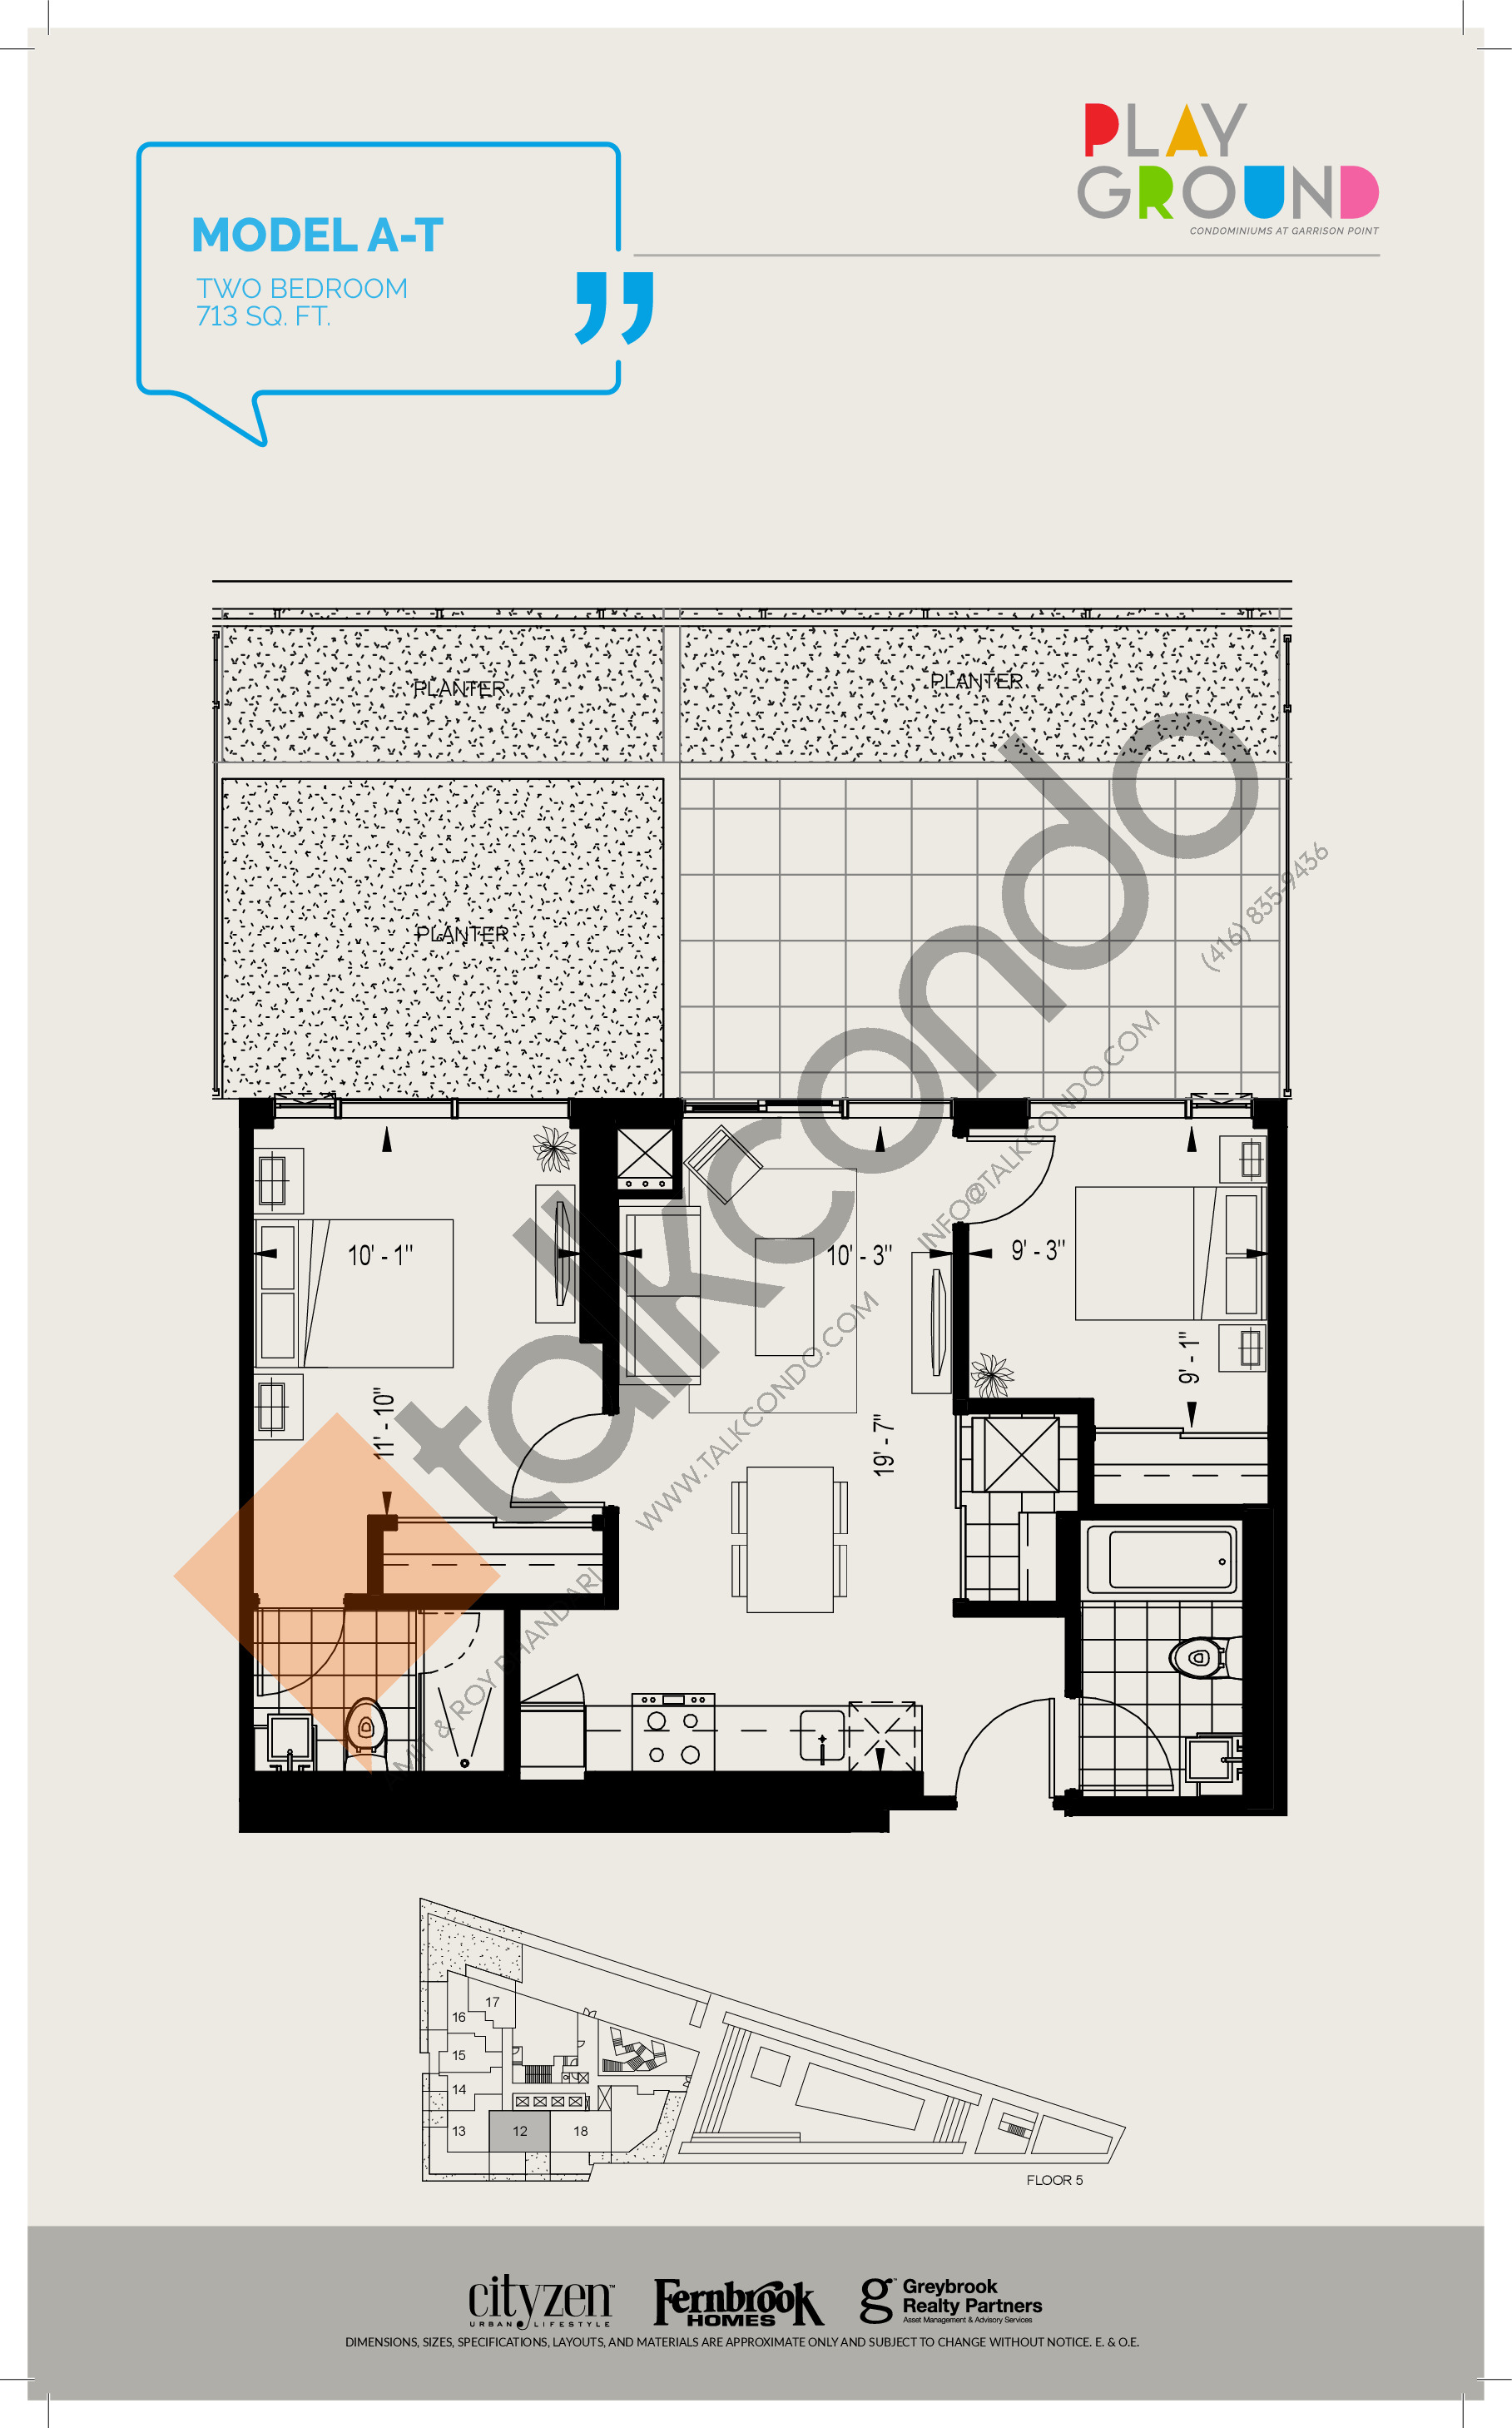 Model A-T Floor Plan at Playground Condos at Garrison Point - 713 sq.ft